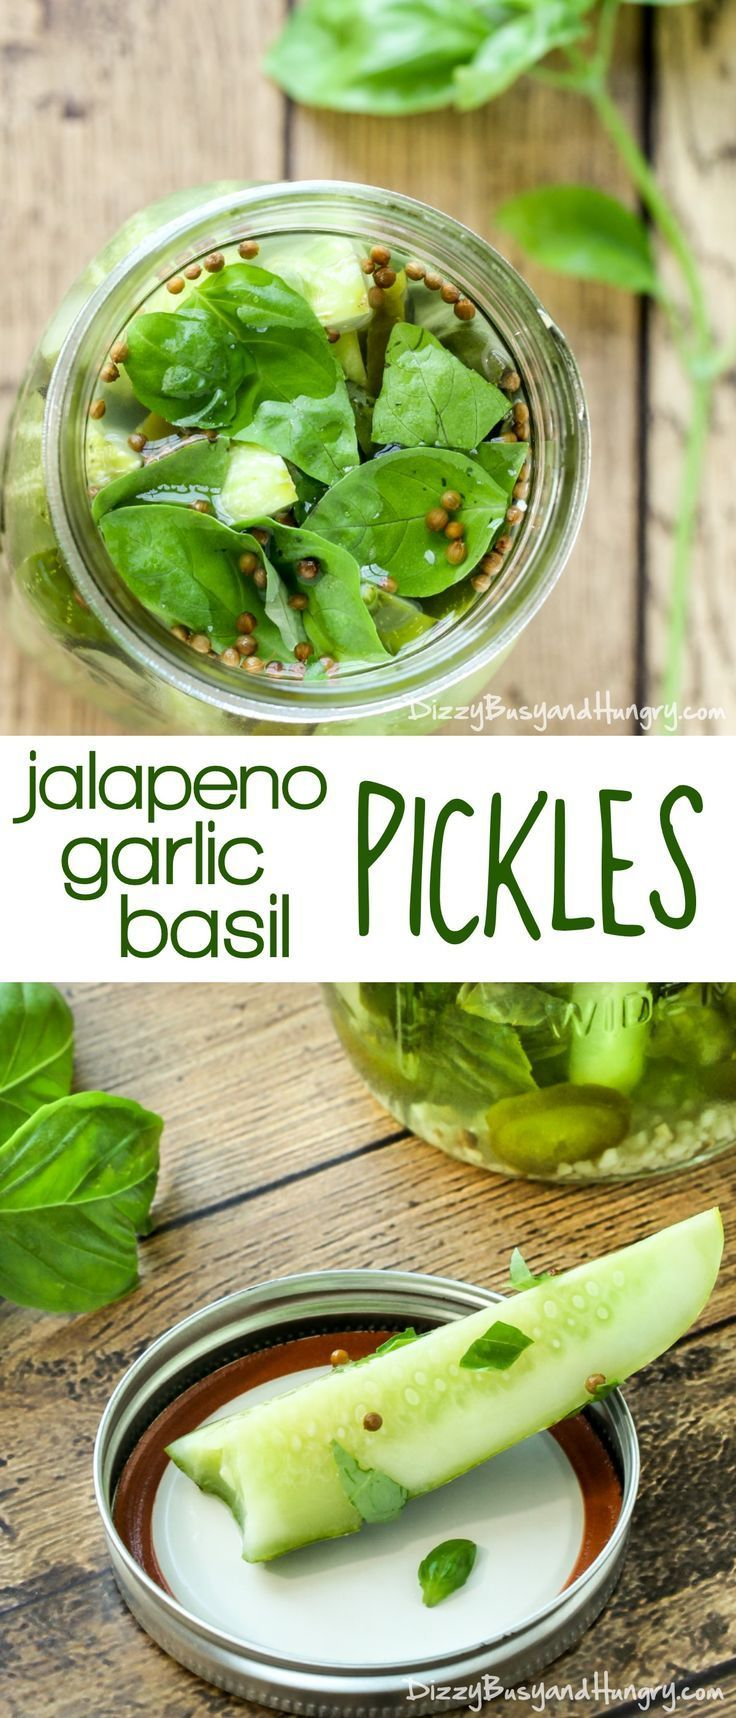 Jalapeno Garlic Basil Pickles | http://DizzyBusyandHungry.com - Tangy, zesty, and crunchy pickles, easy to make and ready for snacking the very next day!